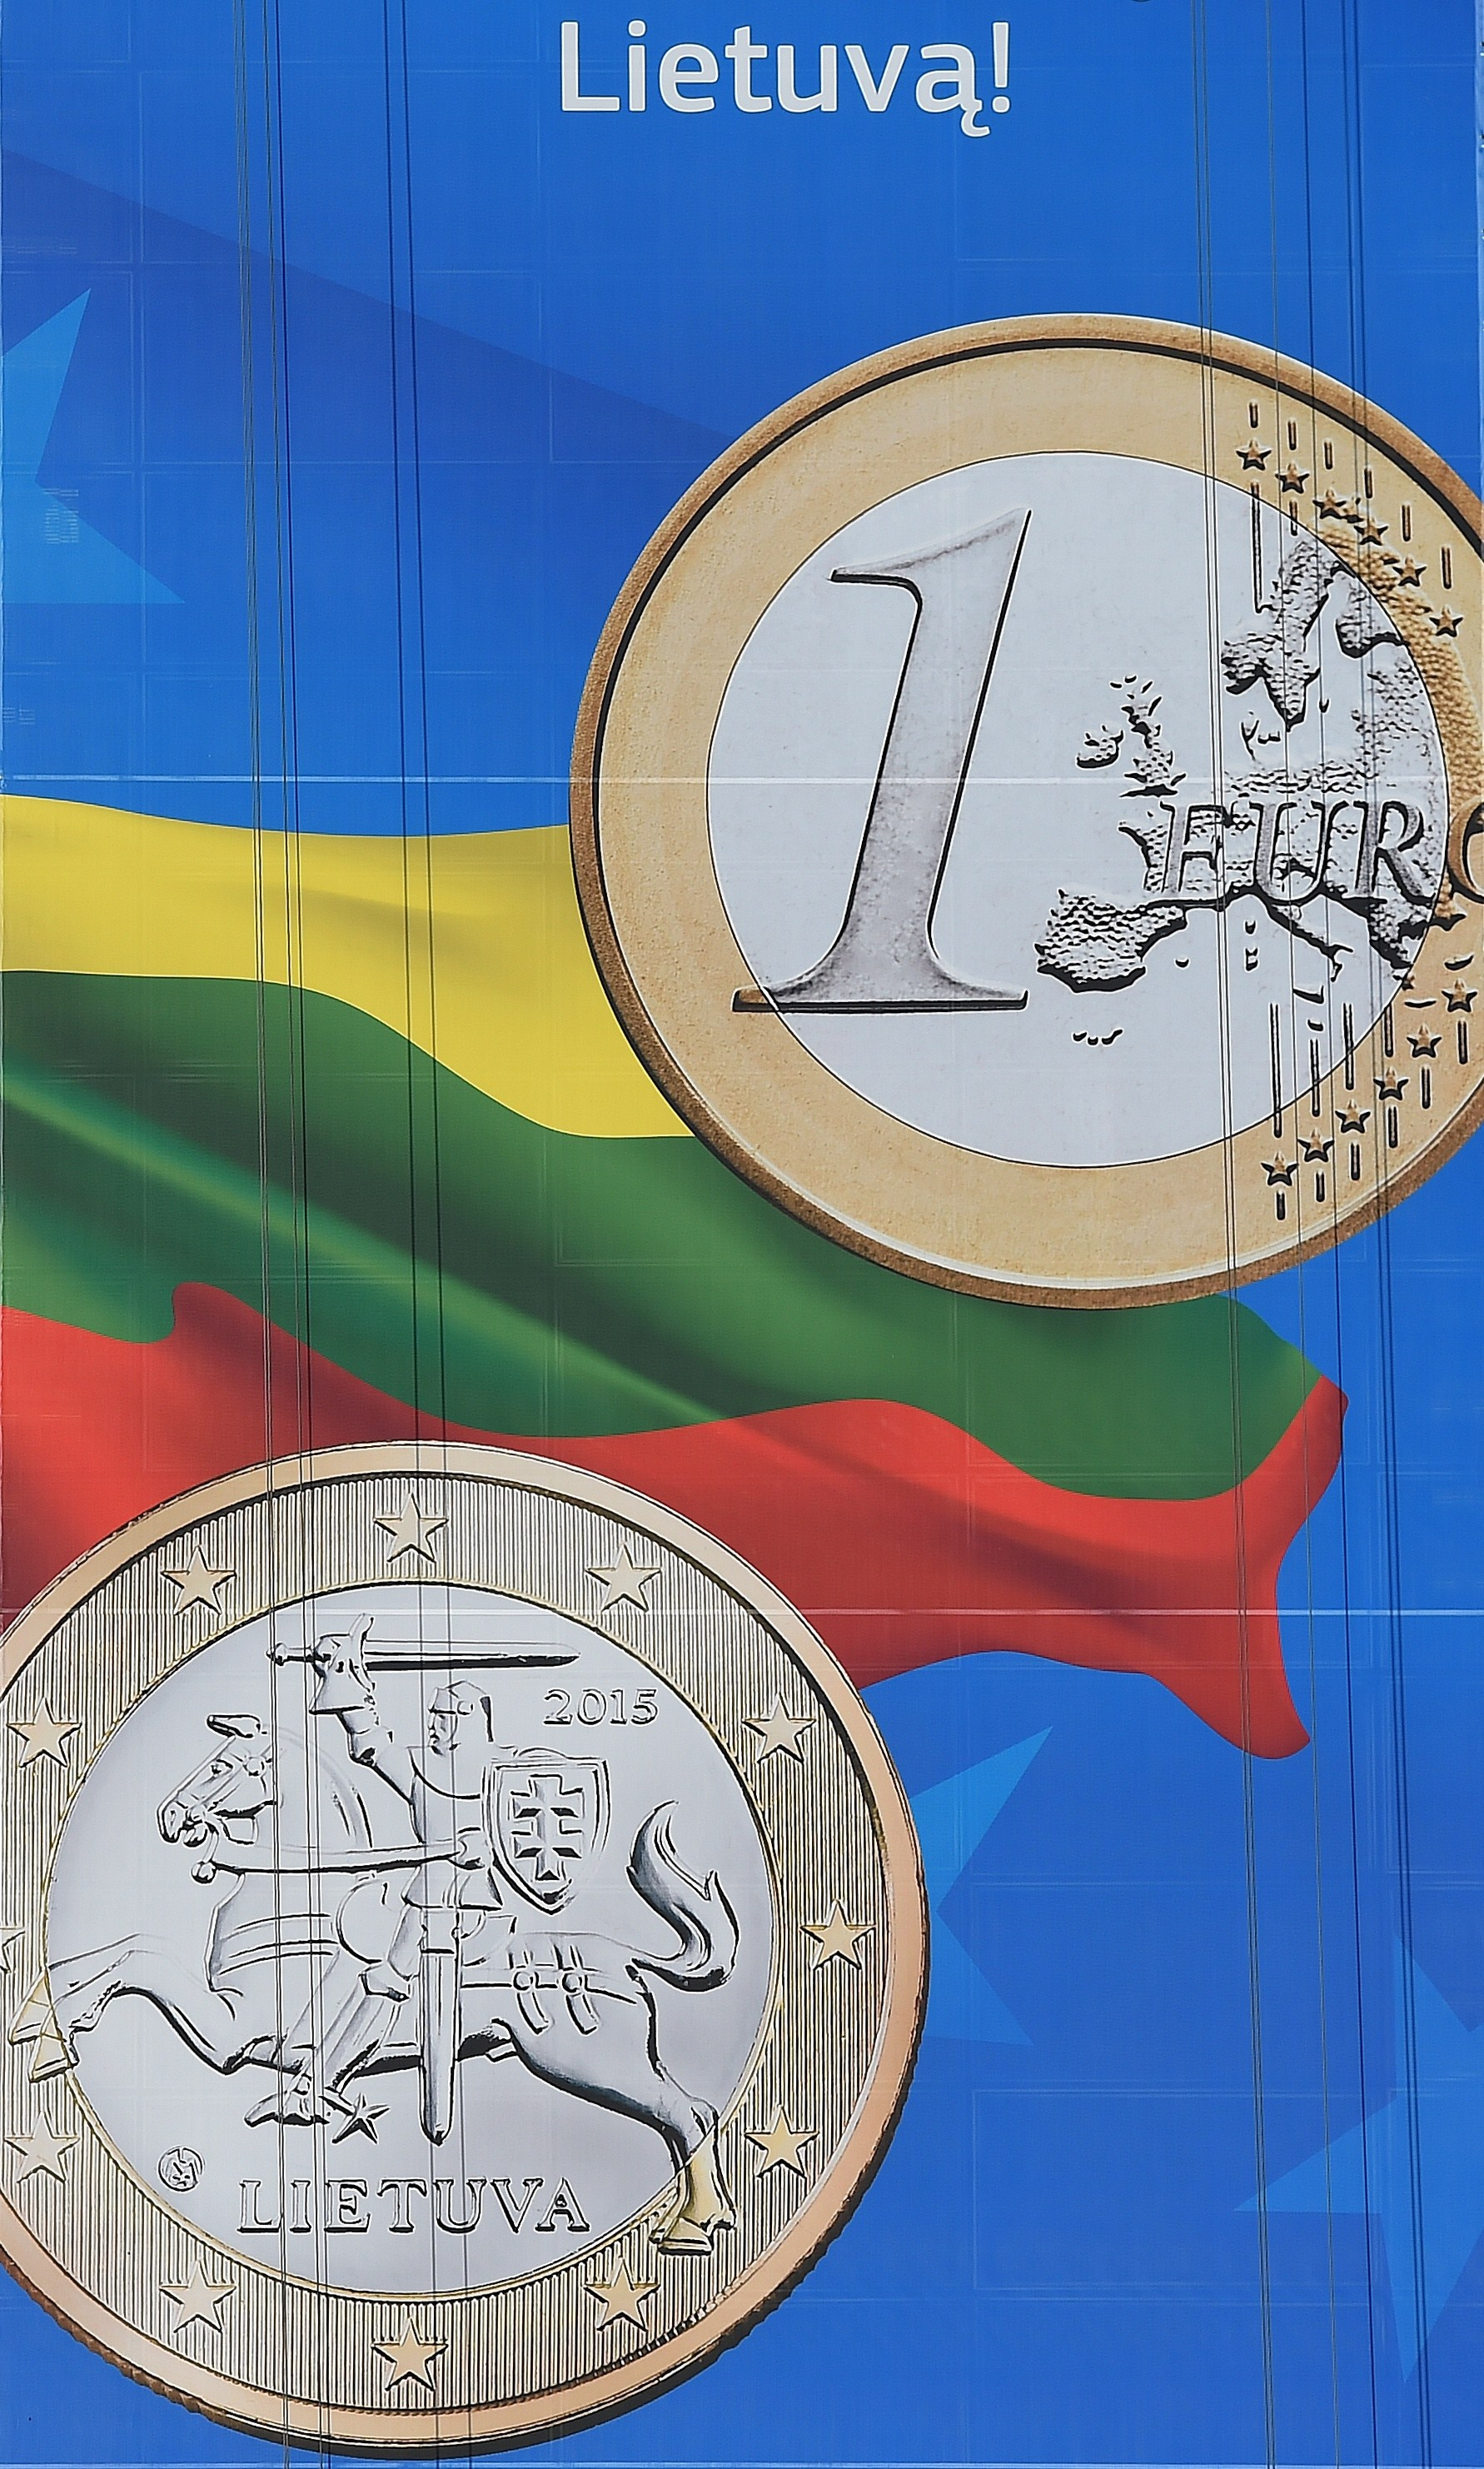 Image for Lithuania's accession to the eurozone: Timing, motives, expectations